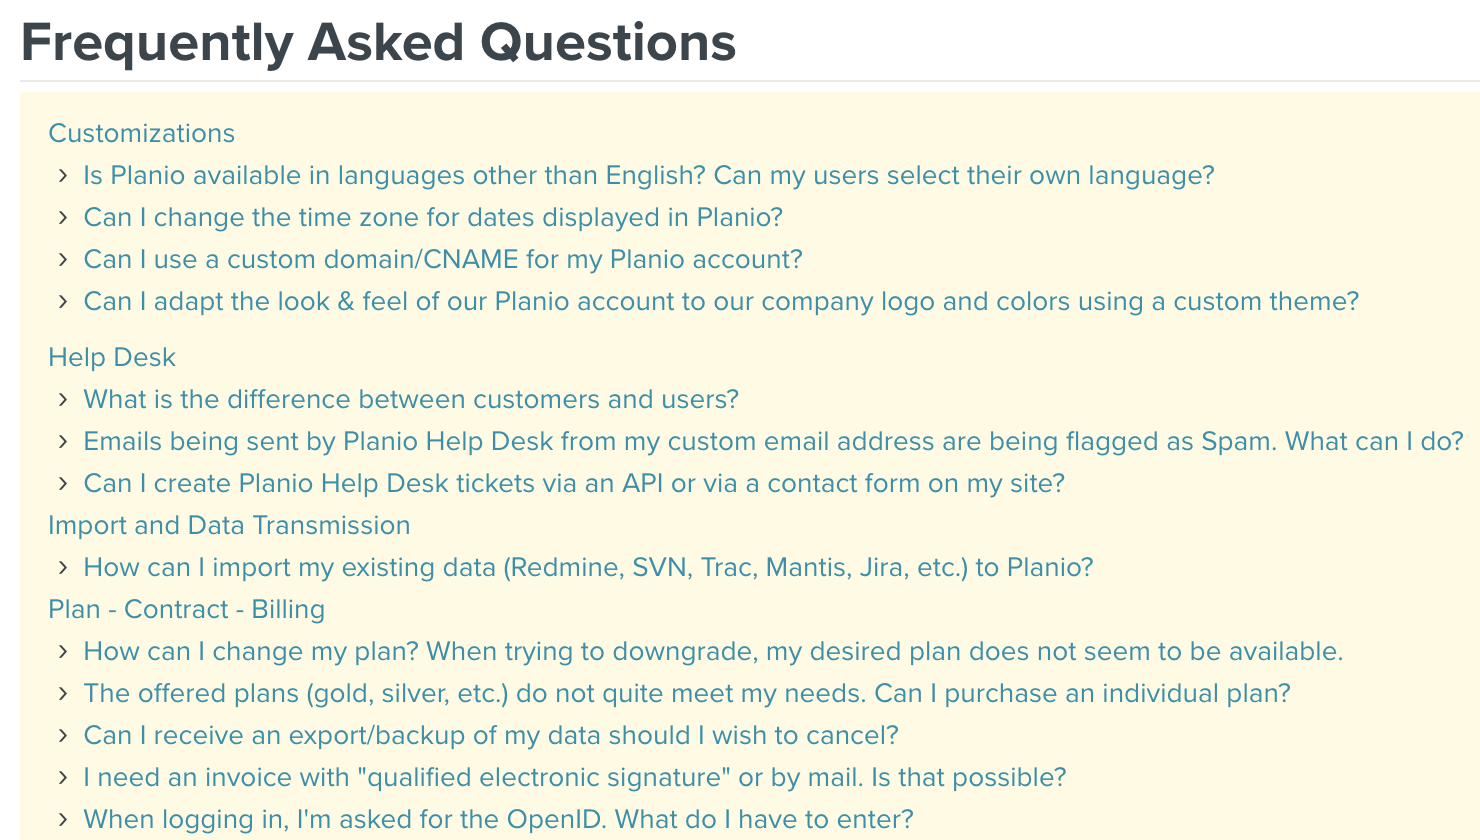 Create Your Own Faq Section Based On Help Desk Templates